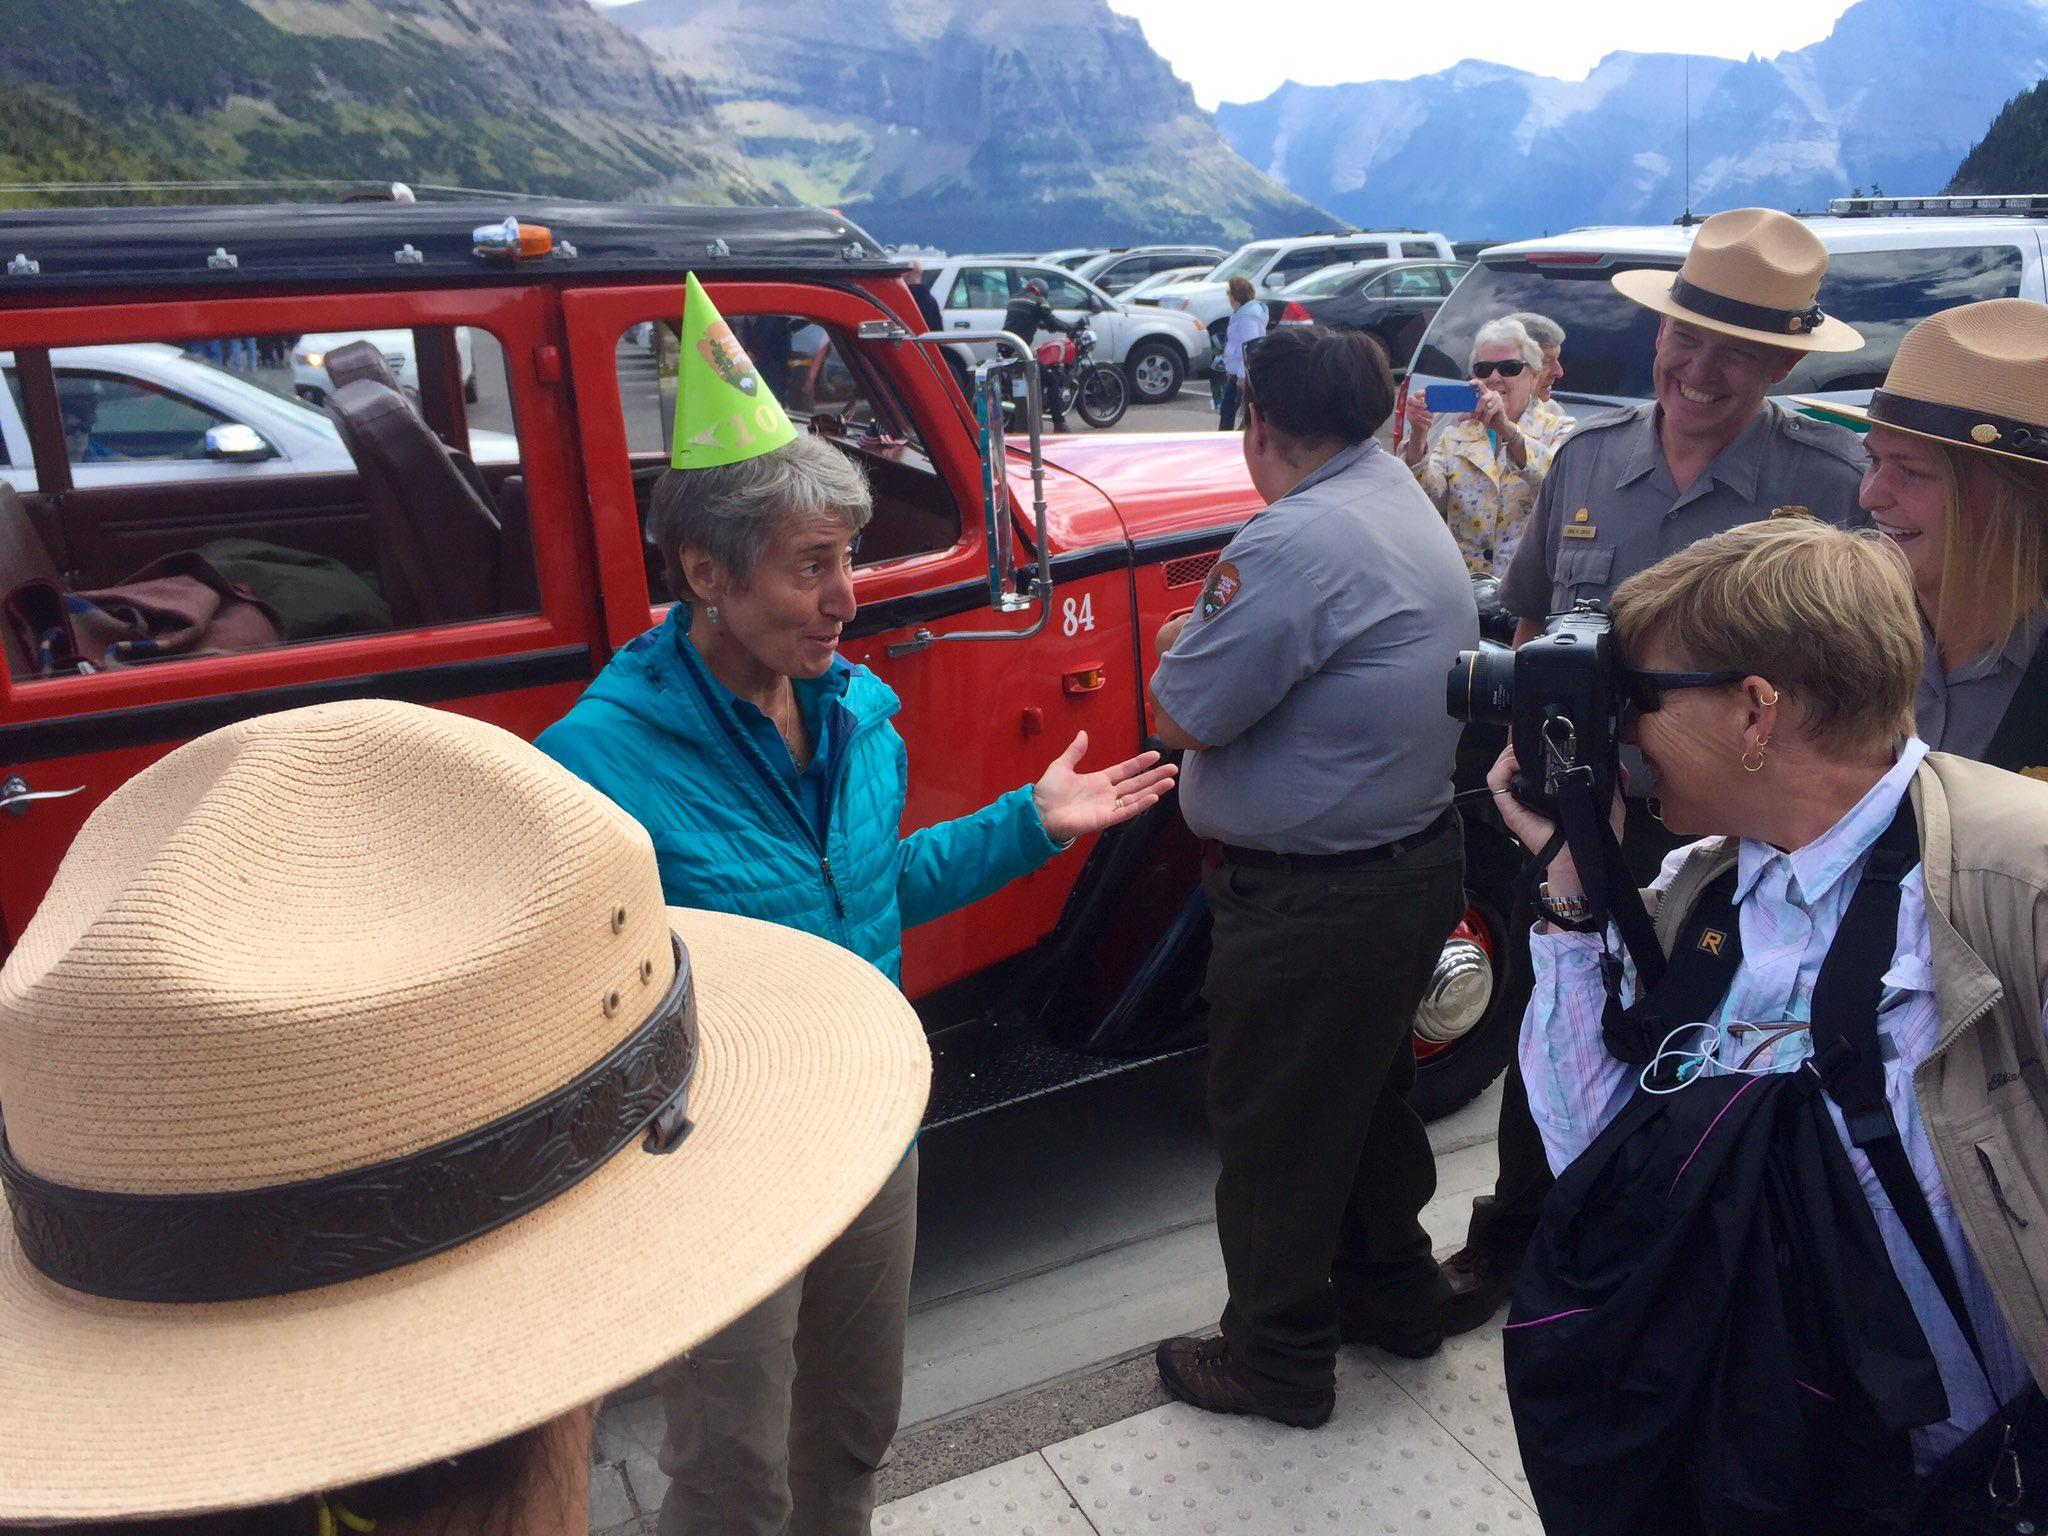 Secretetary Of Interior Sally Jewell Visited Glacier National Park Today To Celebrate The 100th Birthday Service